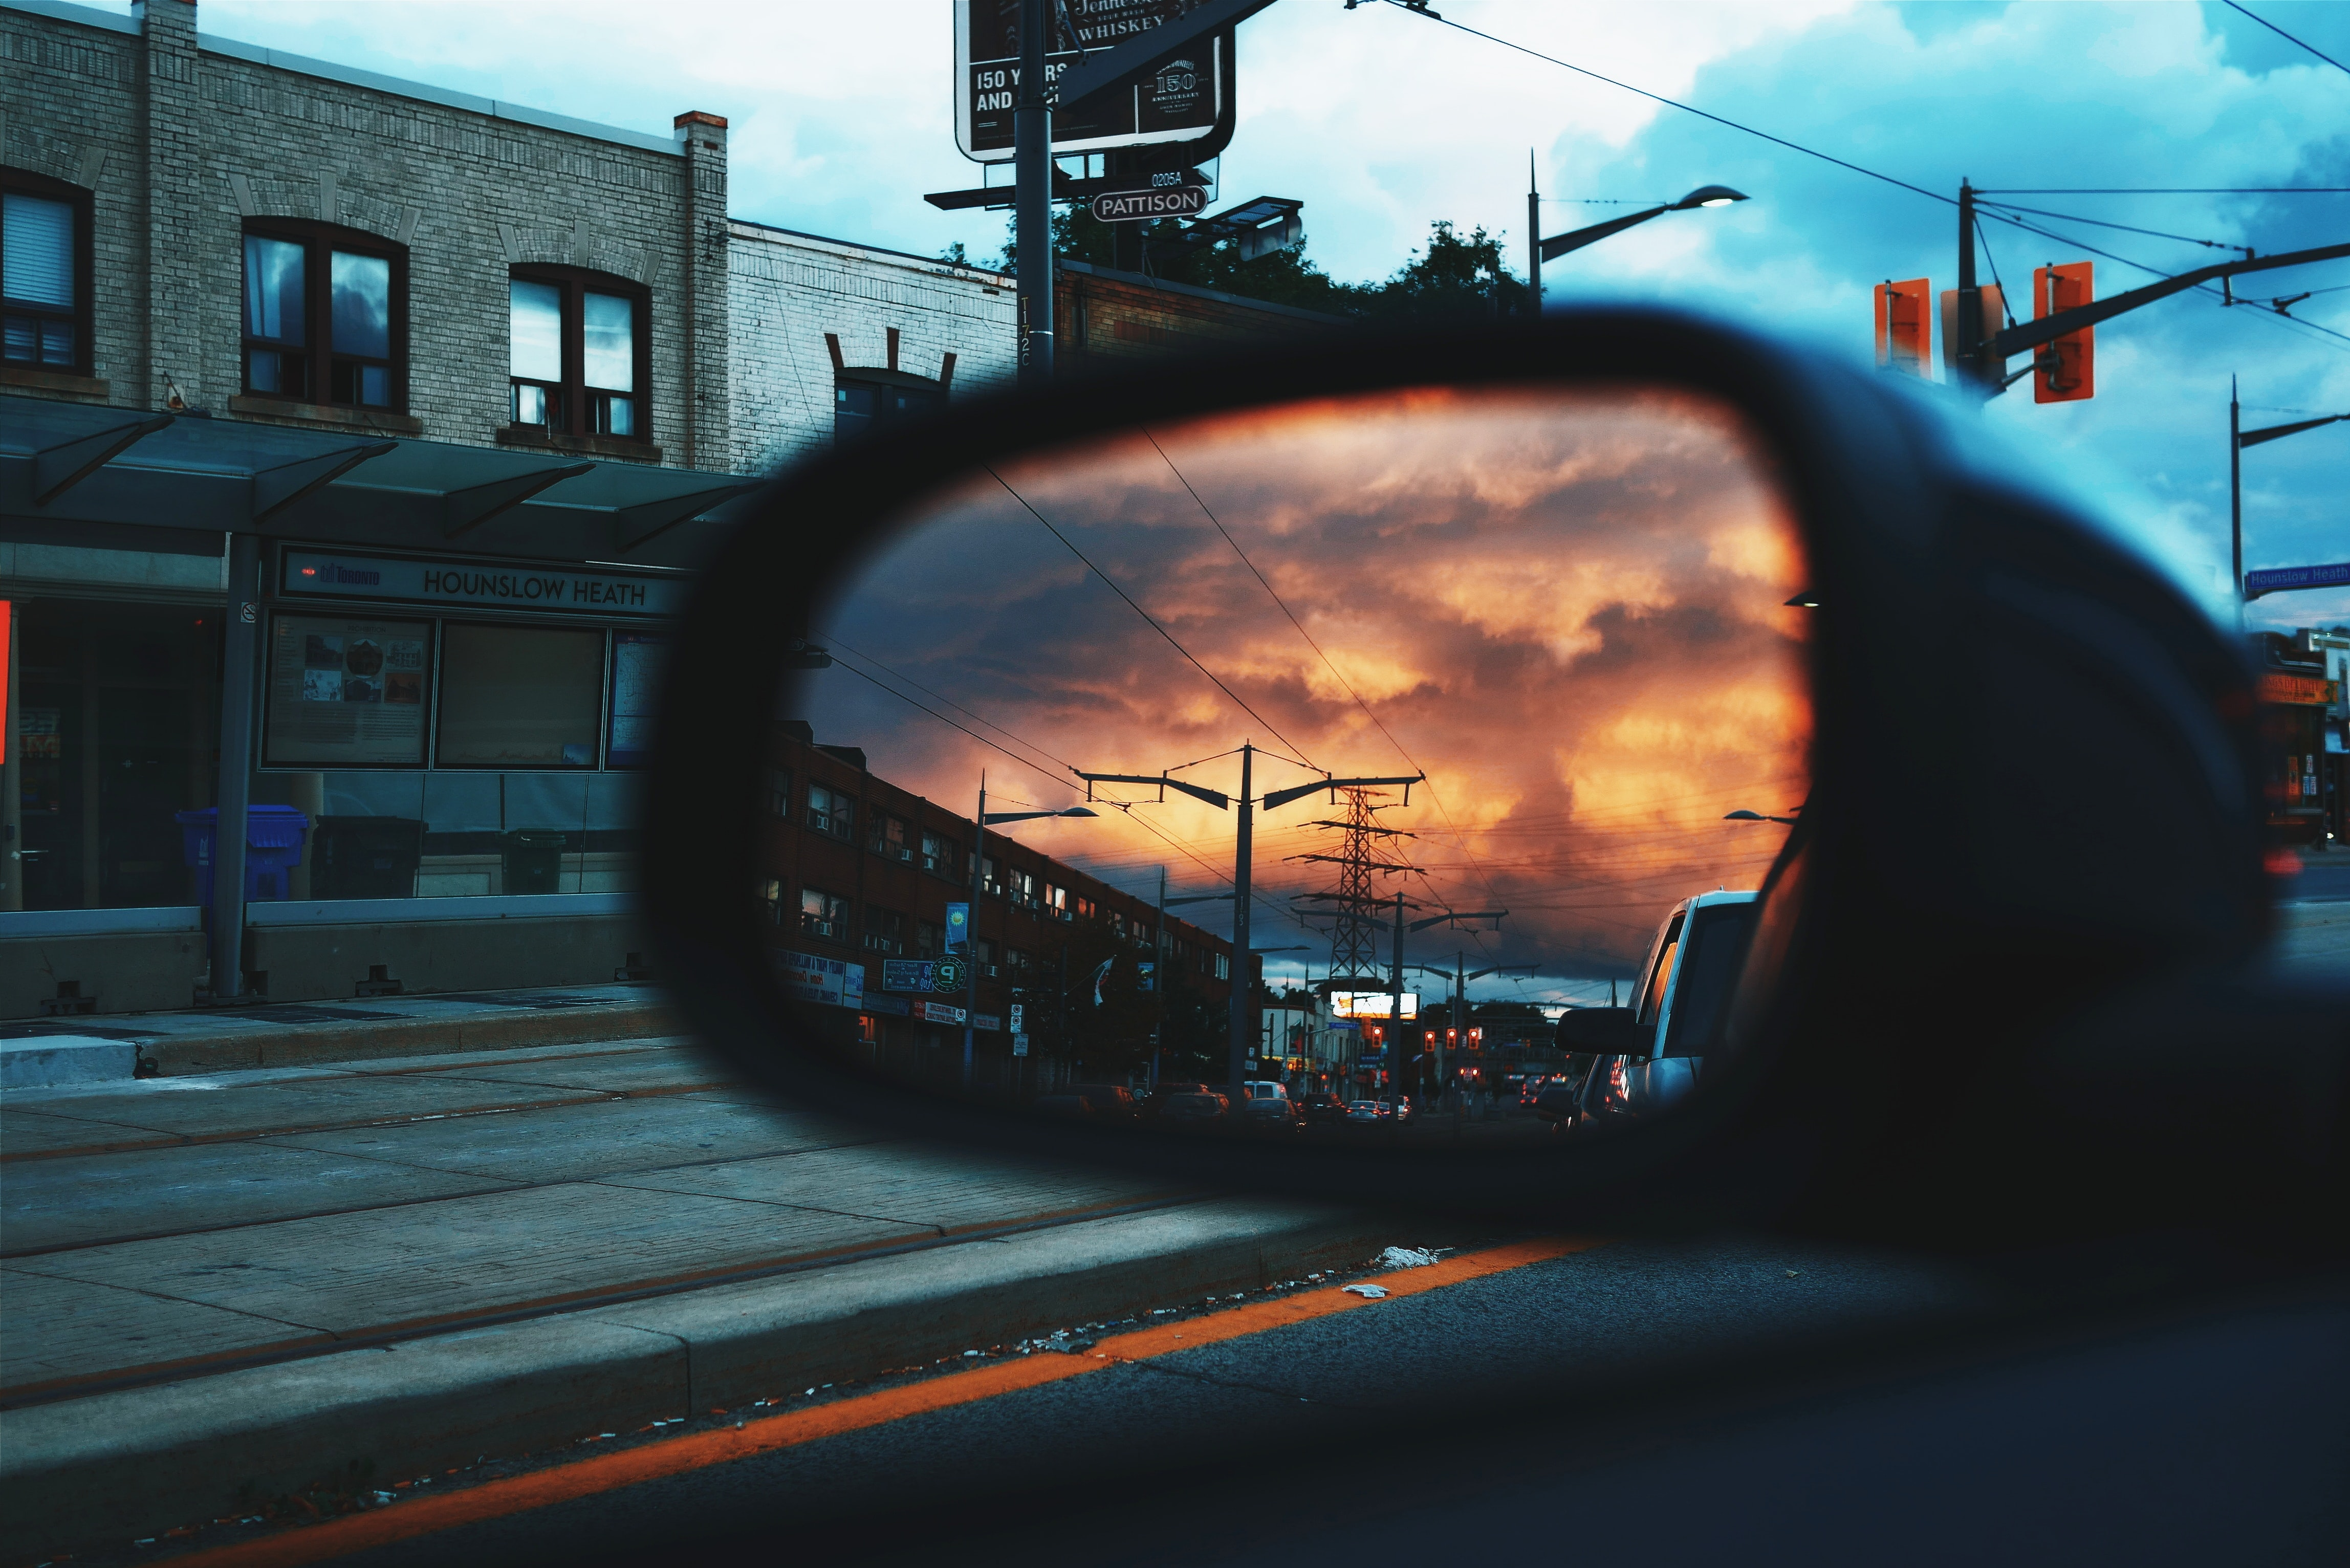 The view of an orange sky and the road from a side mirror on a car in Toronto